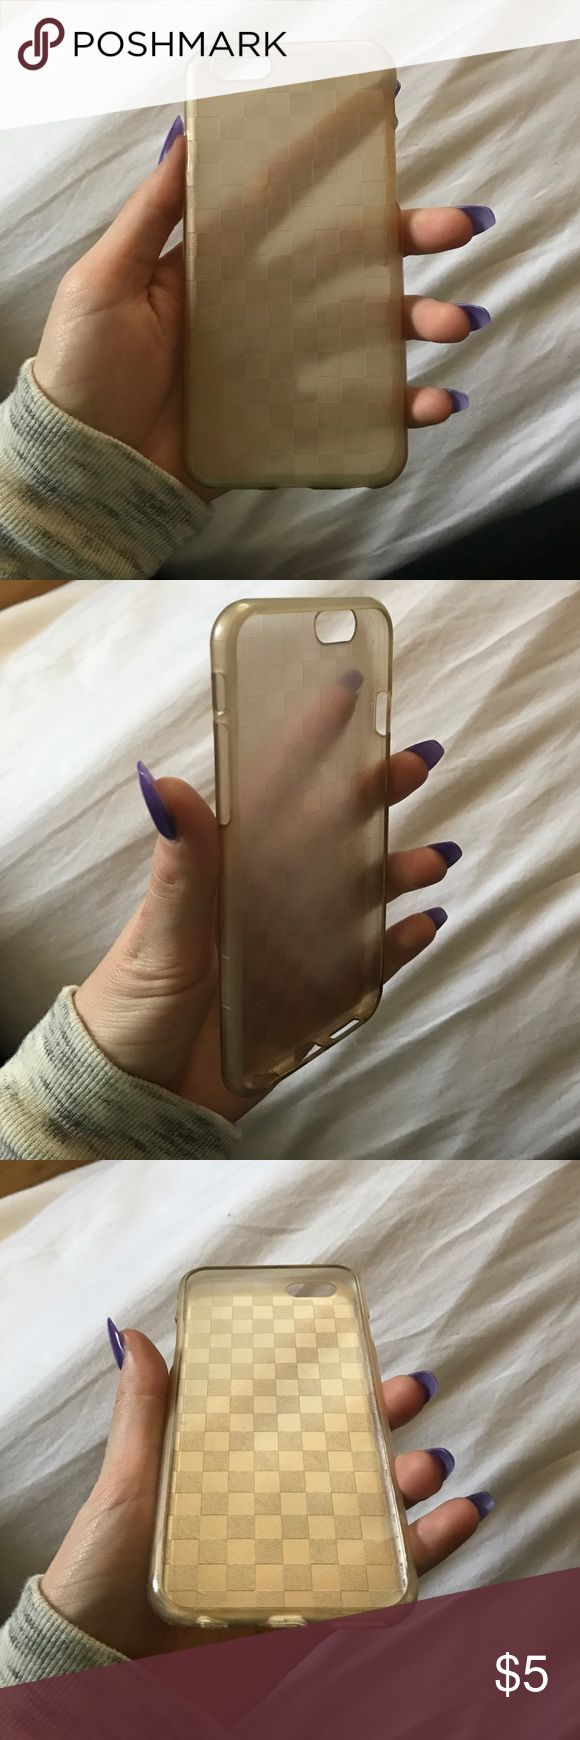 iPhone 6 case iPhone 6 jelly case bronze/gold type color Other